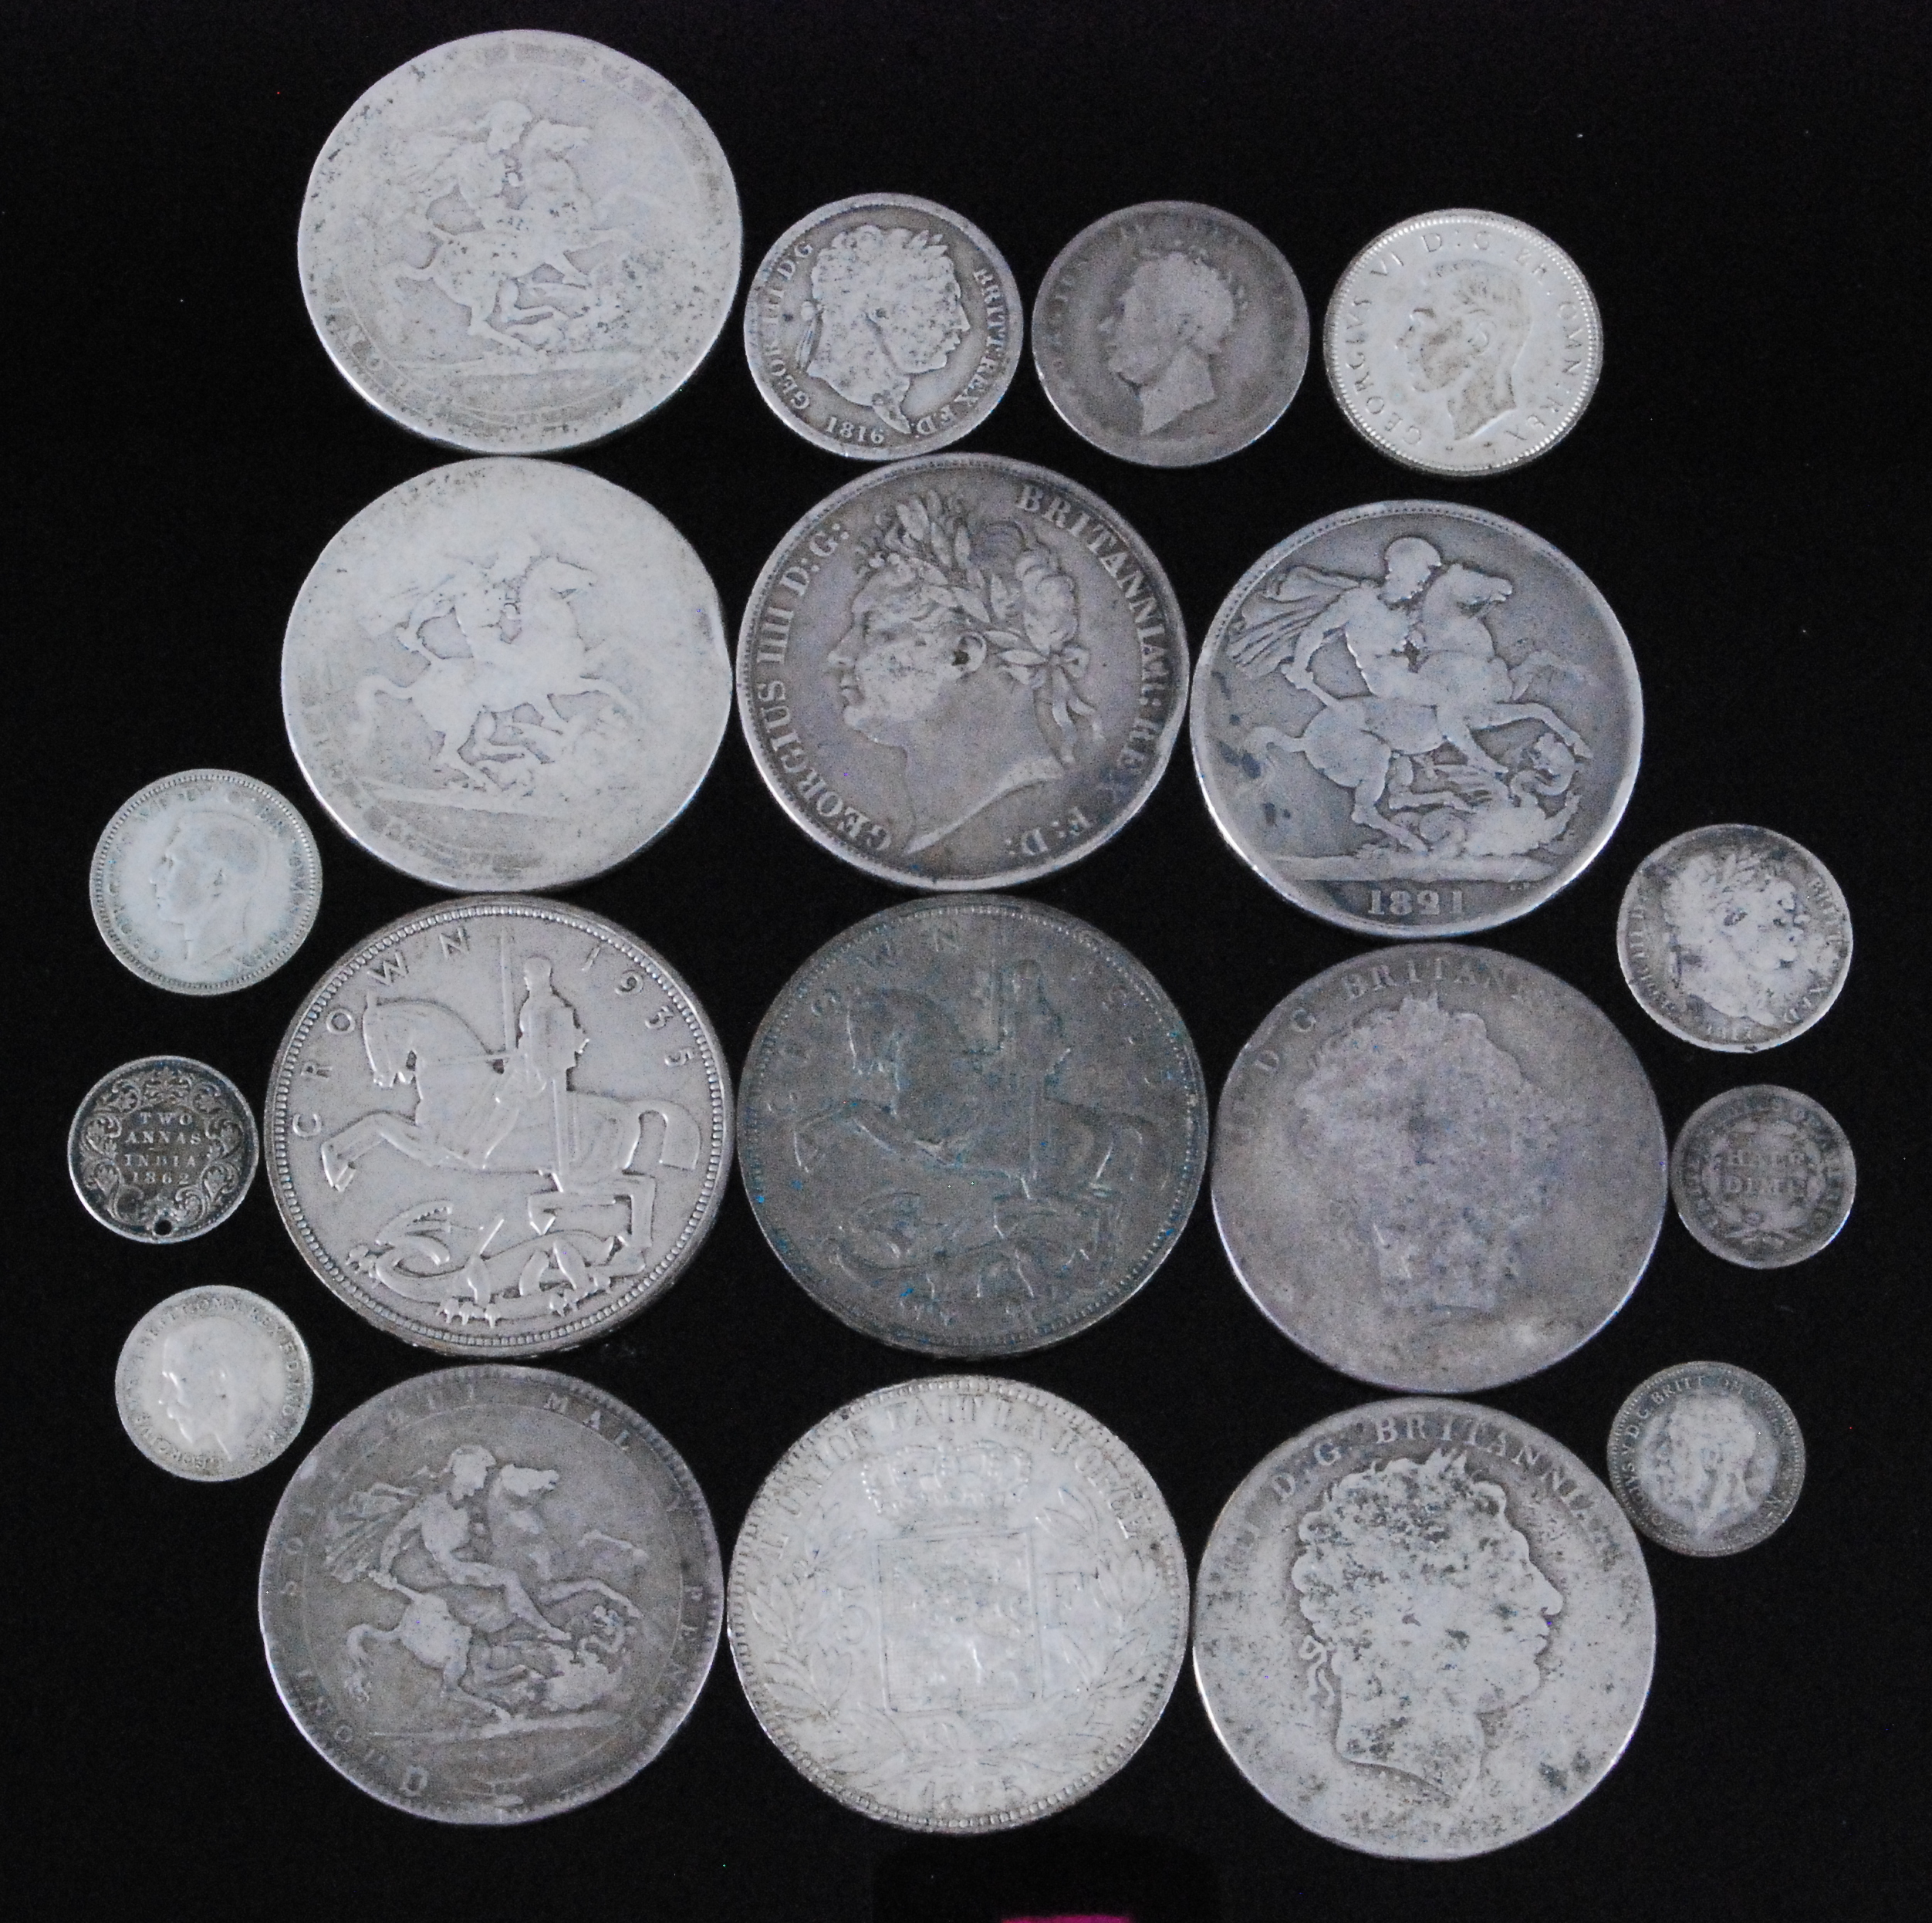 Lot 2083 - Great Britain and World, a collection of George III and later silver coins to include George III